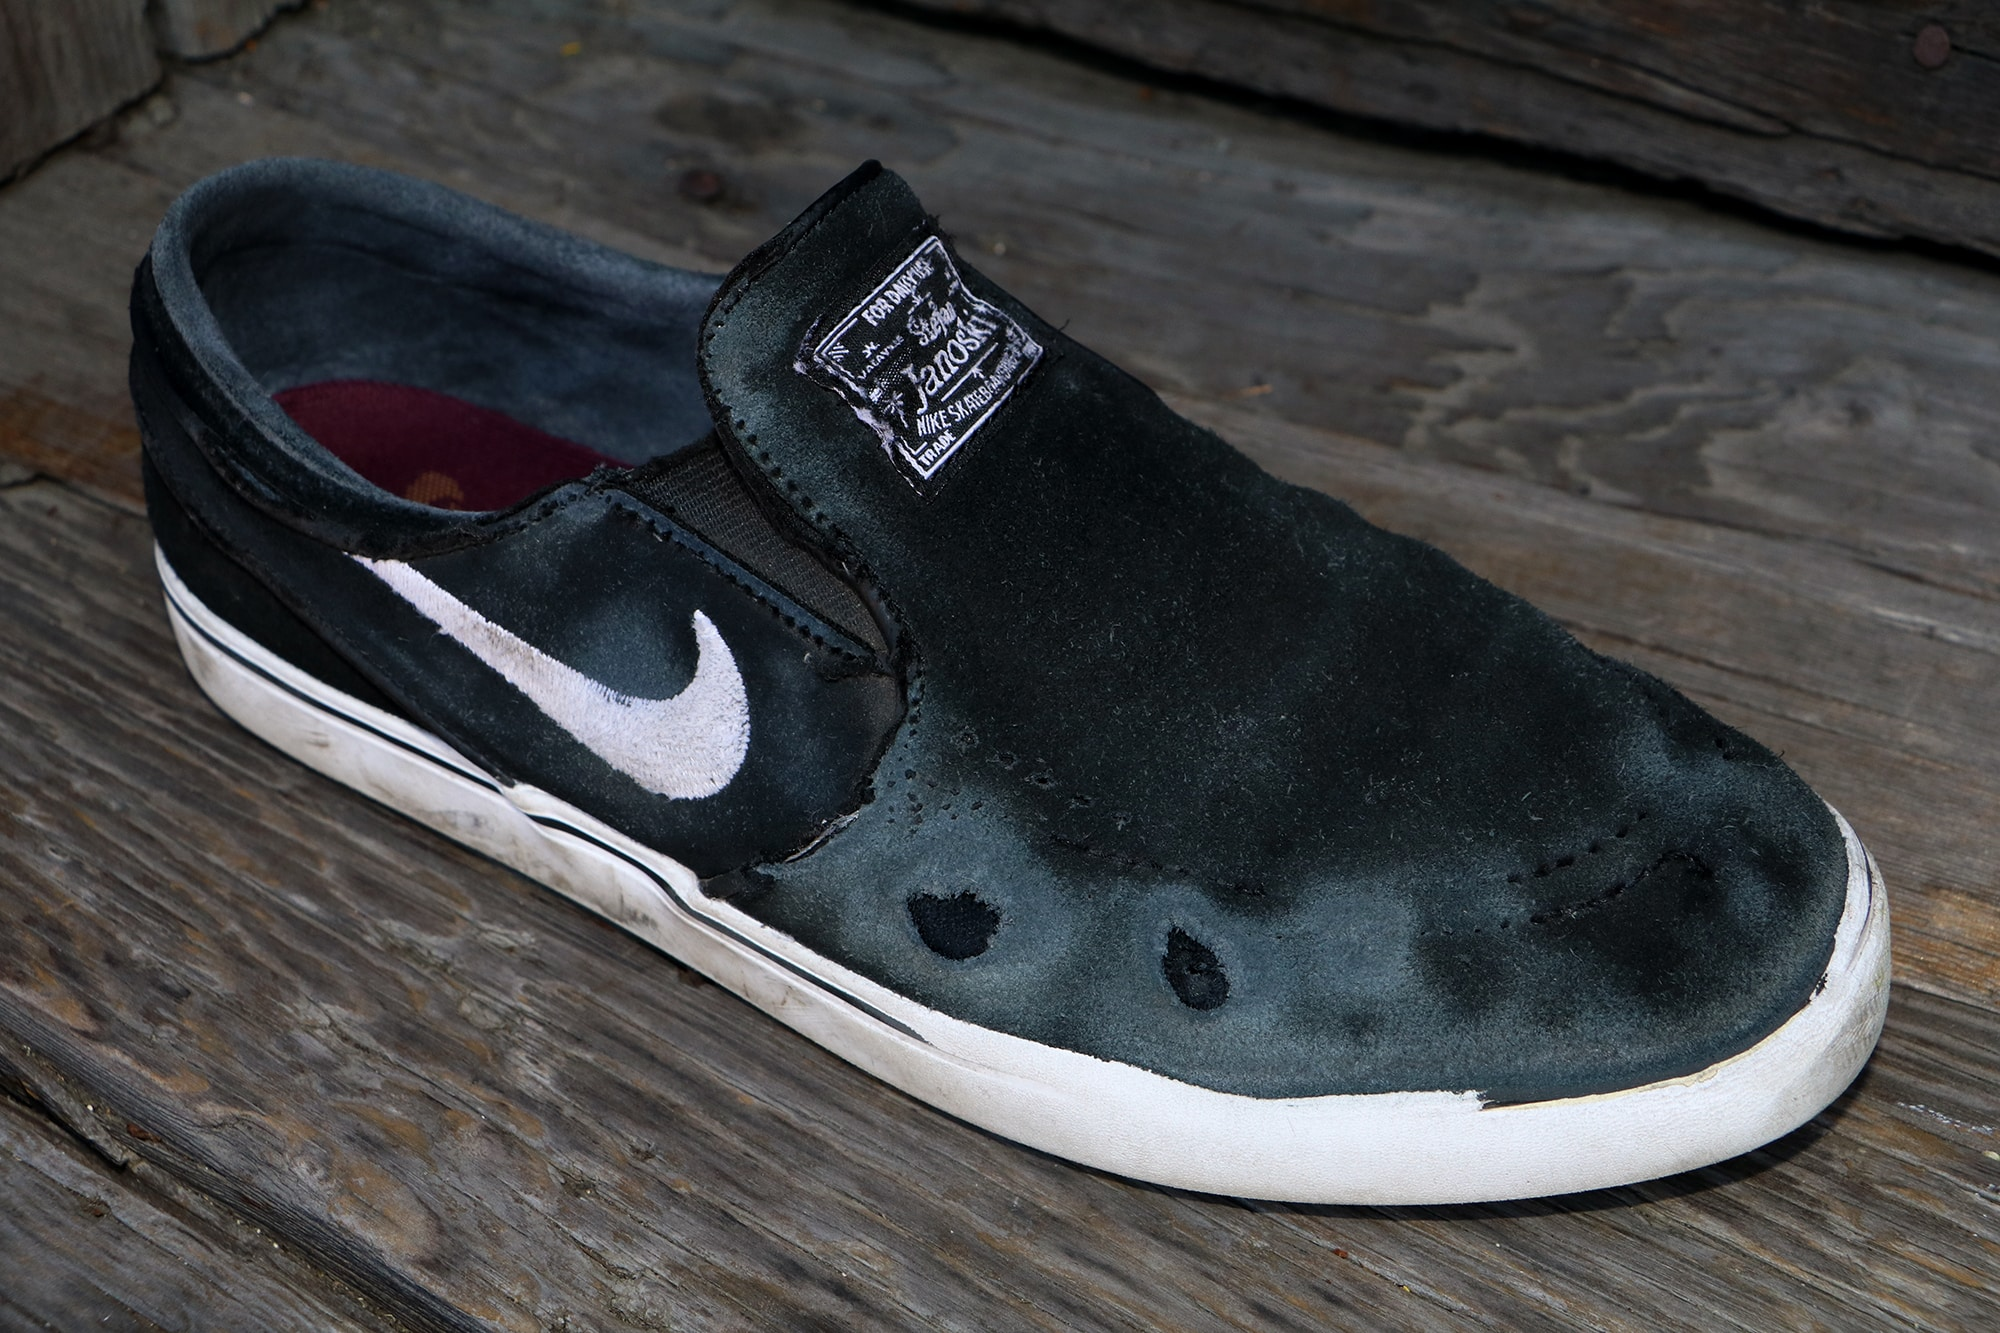 Nike Sb Janoski Slip Skate Shoes Wear Test Review Tactics